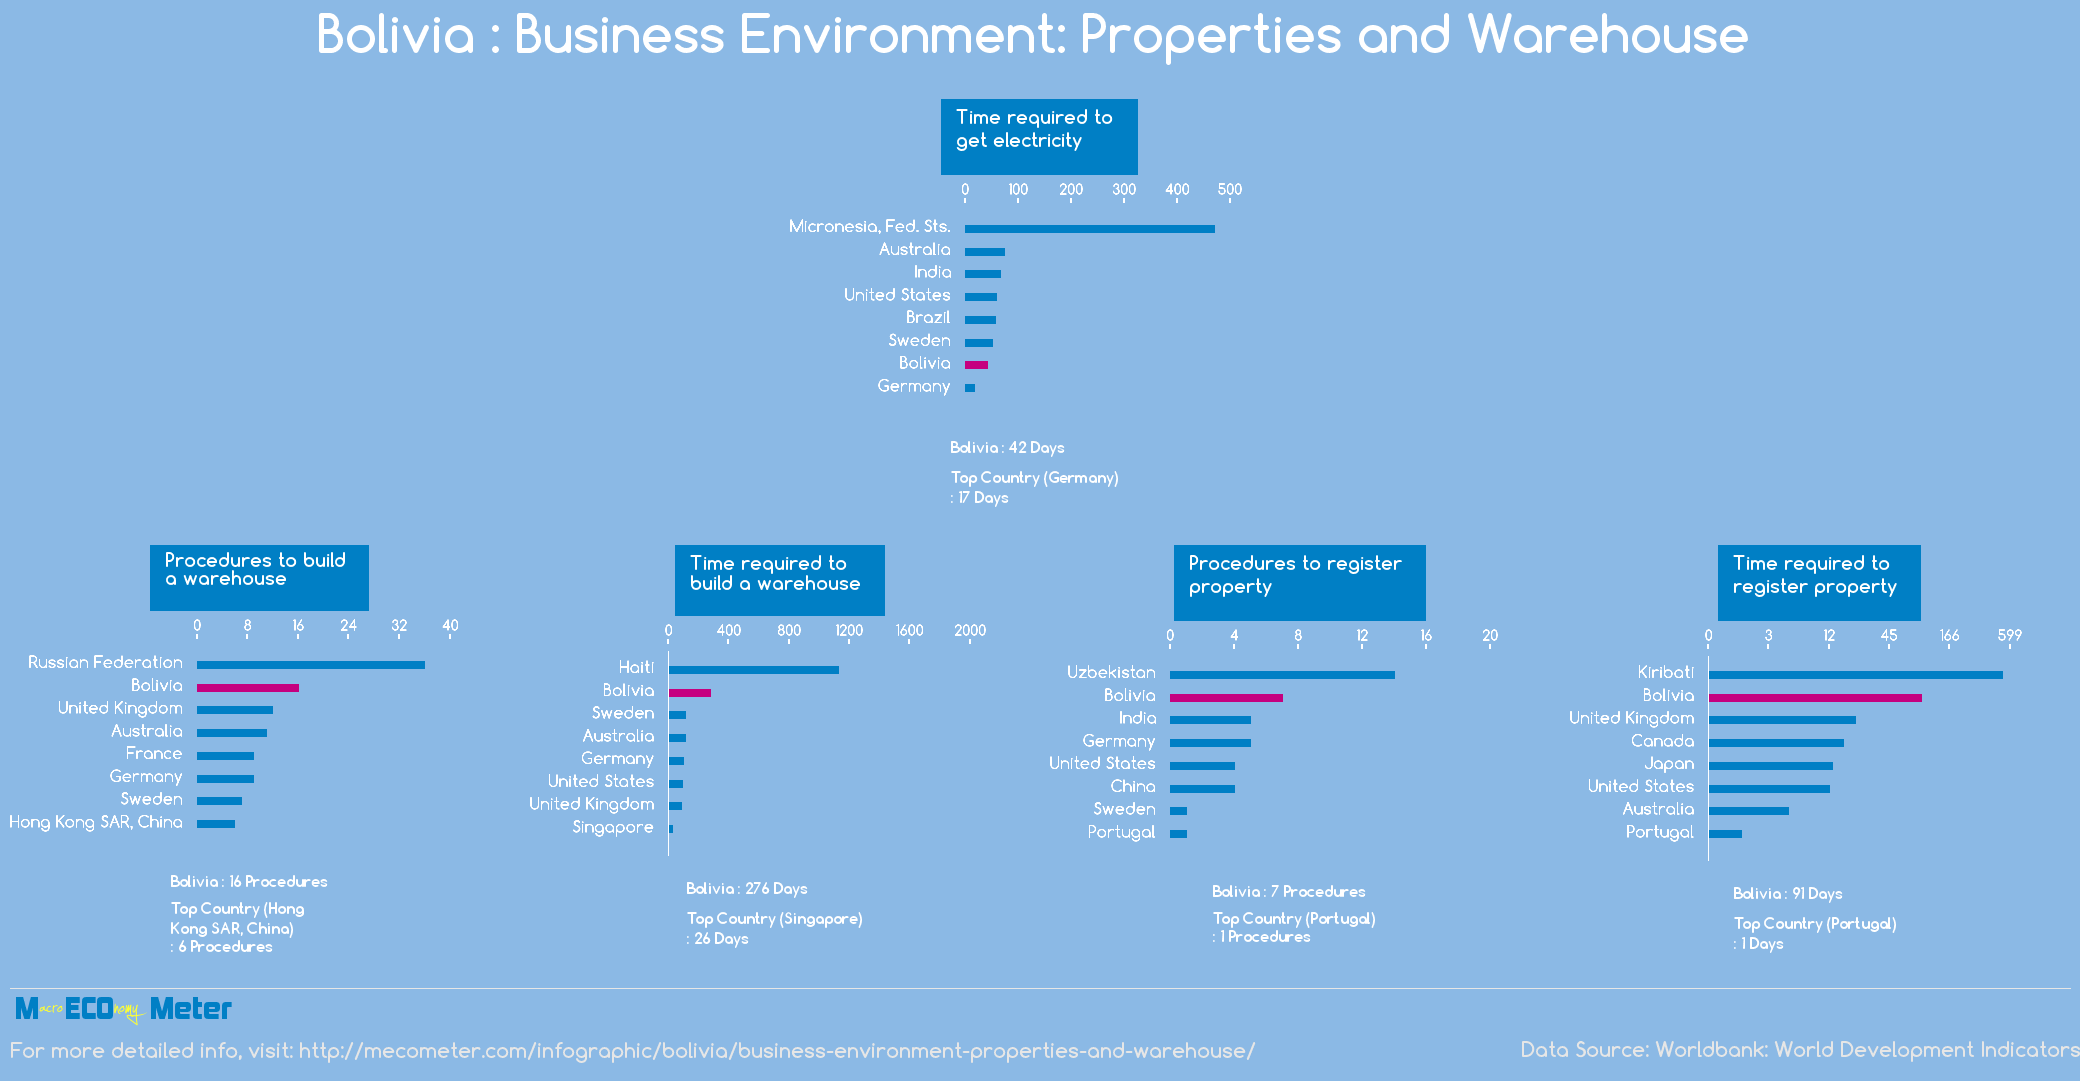 Bolivia : Business Environment: Properties and Warehouse